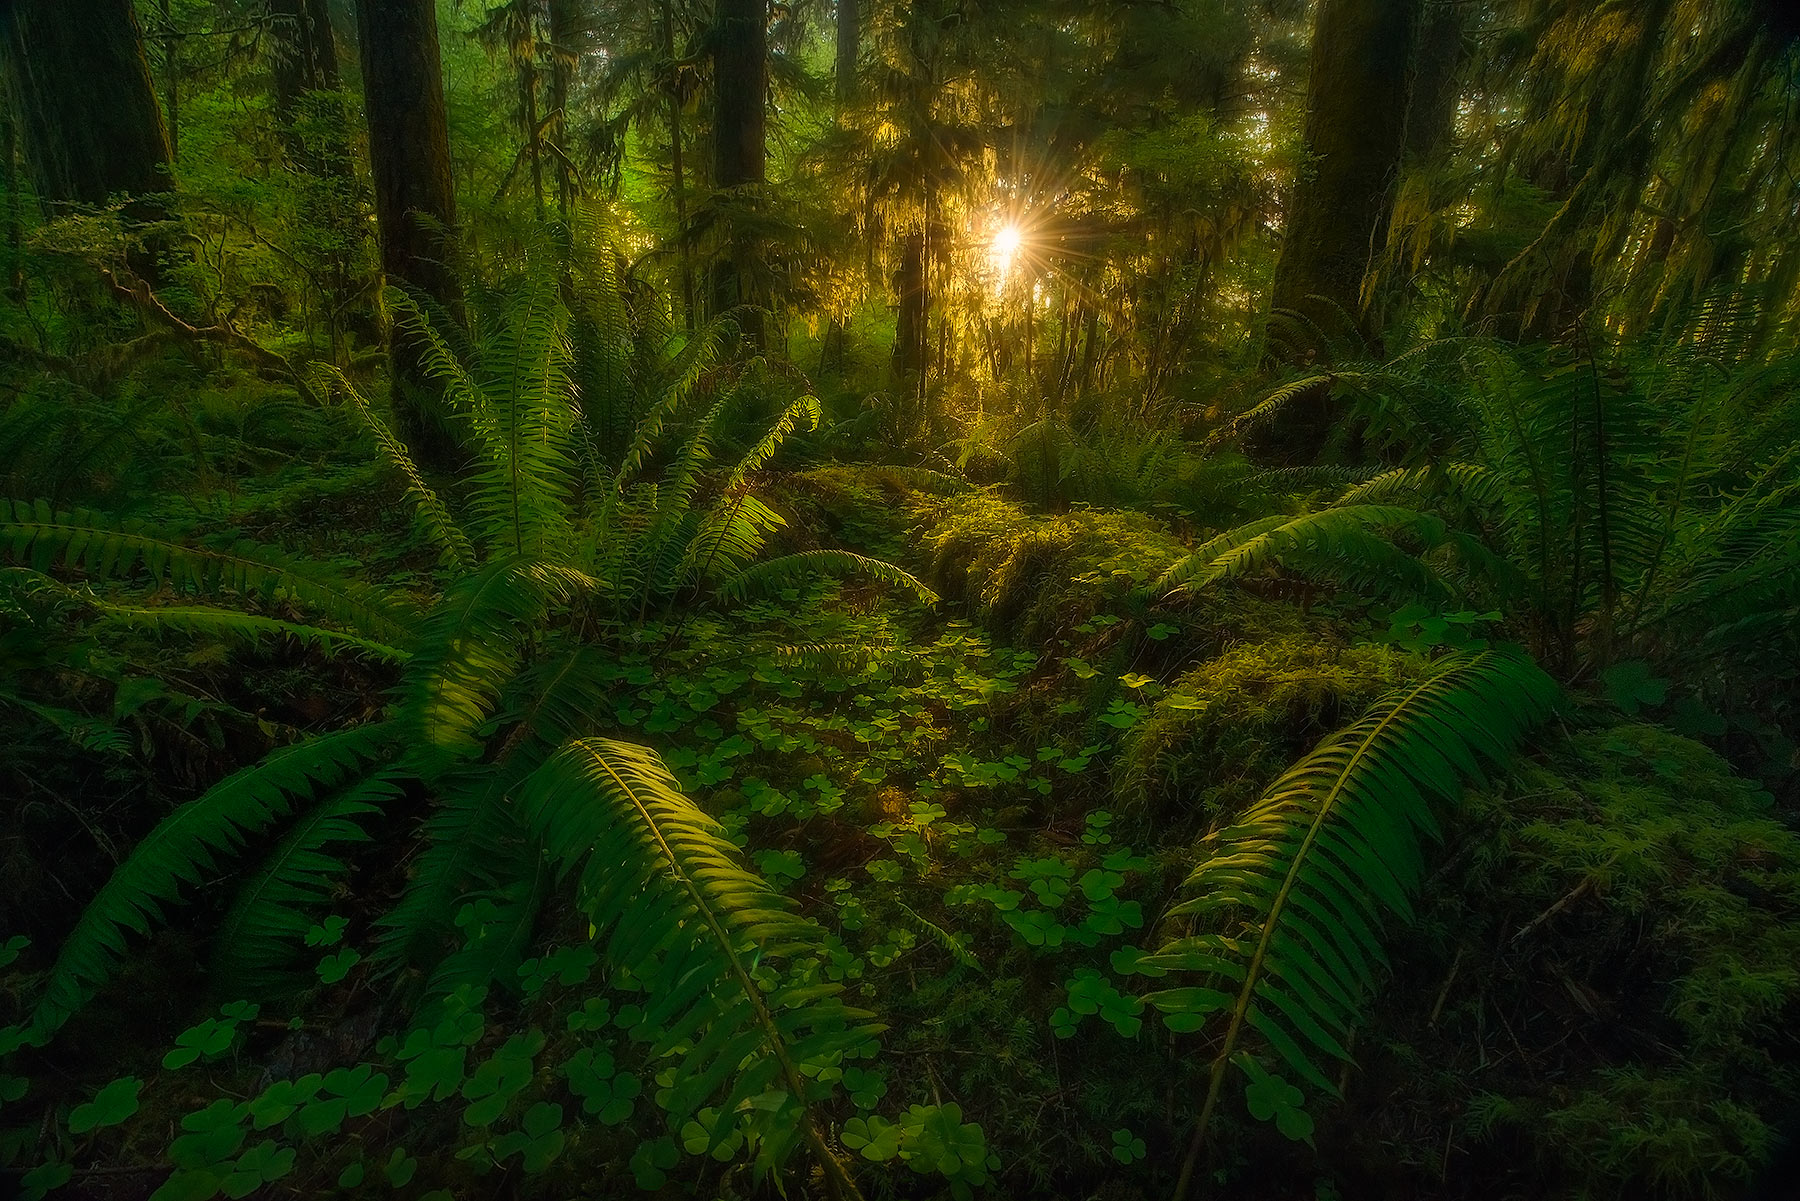 Rain Forest, Washington, Olympic, mosses, ferns, trees, forest, photo